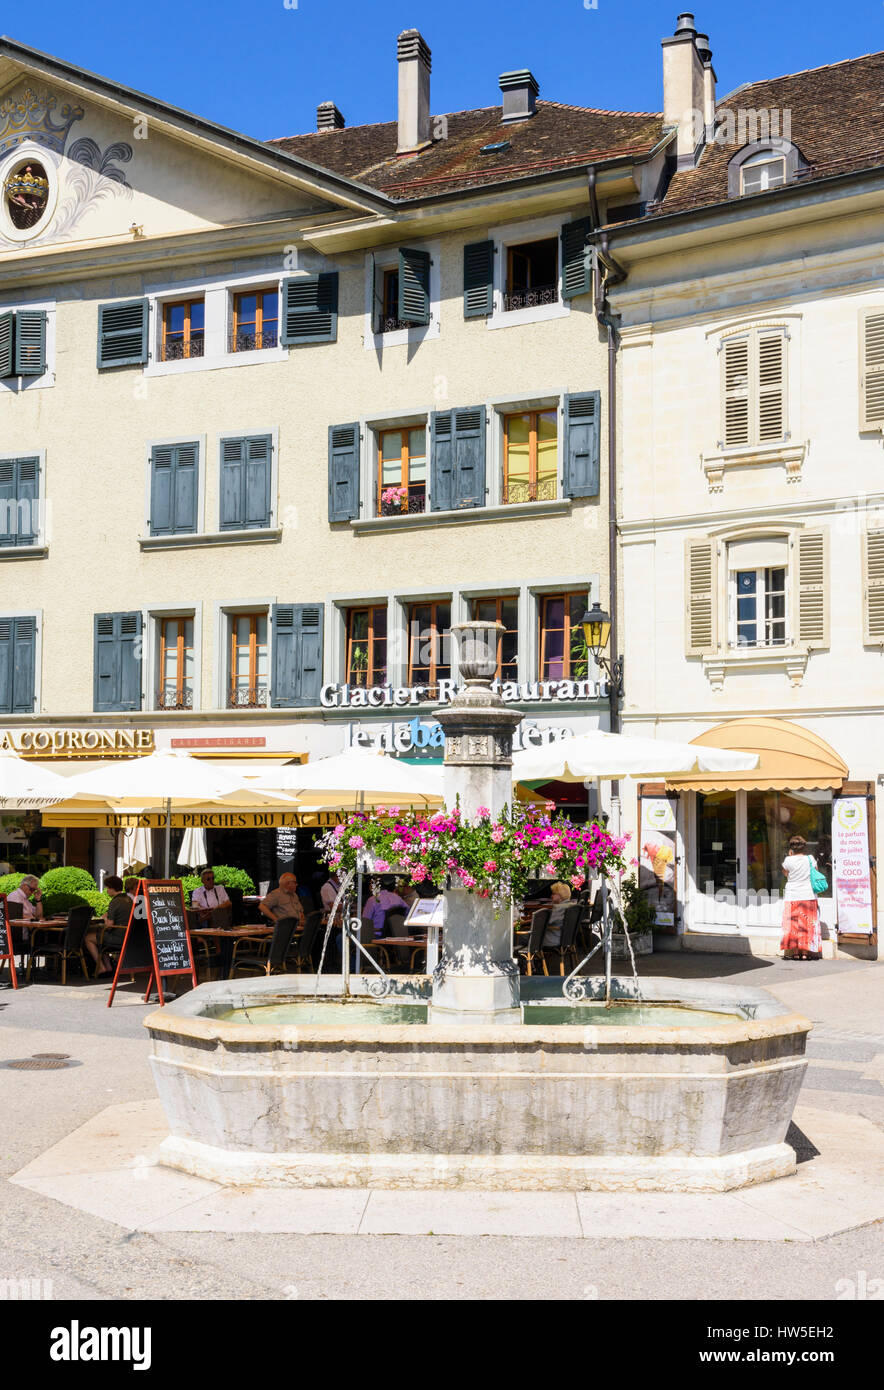 Cafes and restaurants behind a fountain in the old town of Nyon, Switzerland - Stock Image